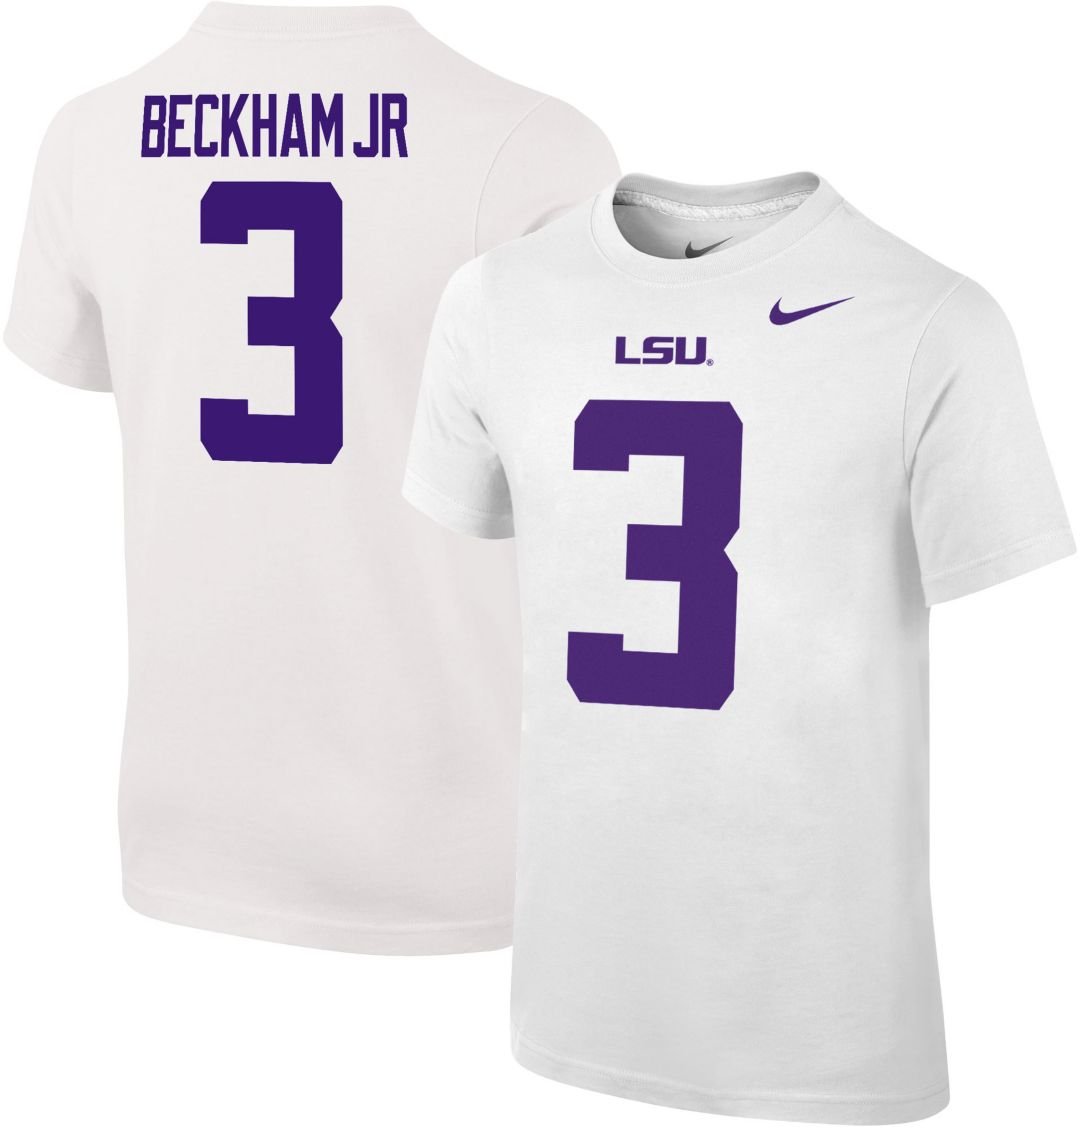 brand new 19b6a 8e6a6 Nike Youth Odell Beckham Jr. LSU Tigers #3 Cotton Football Jersey White  T-Shirt